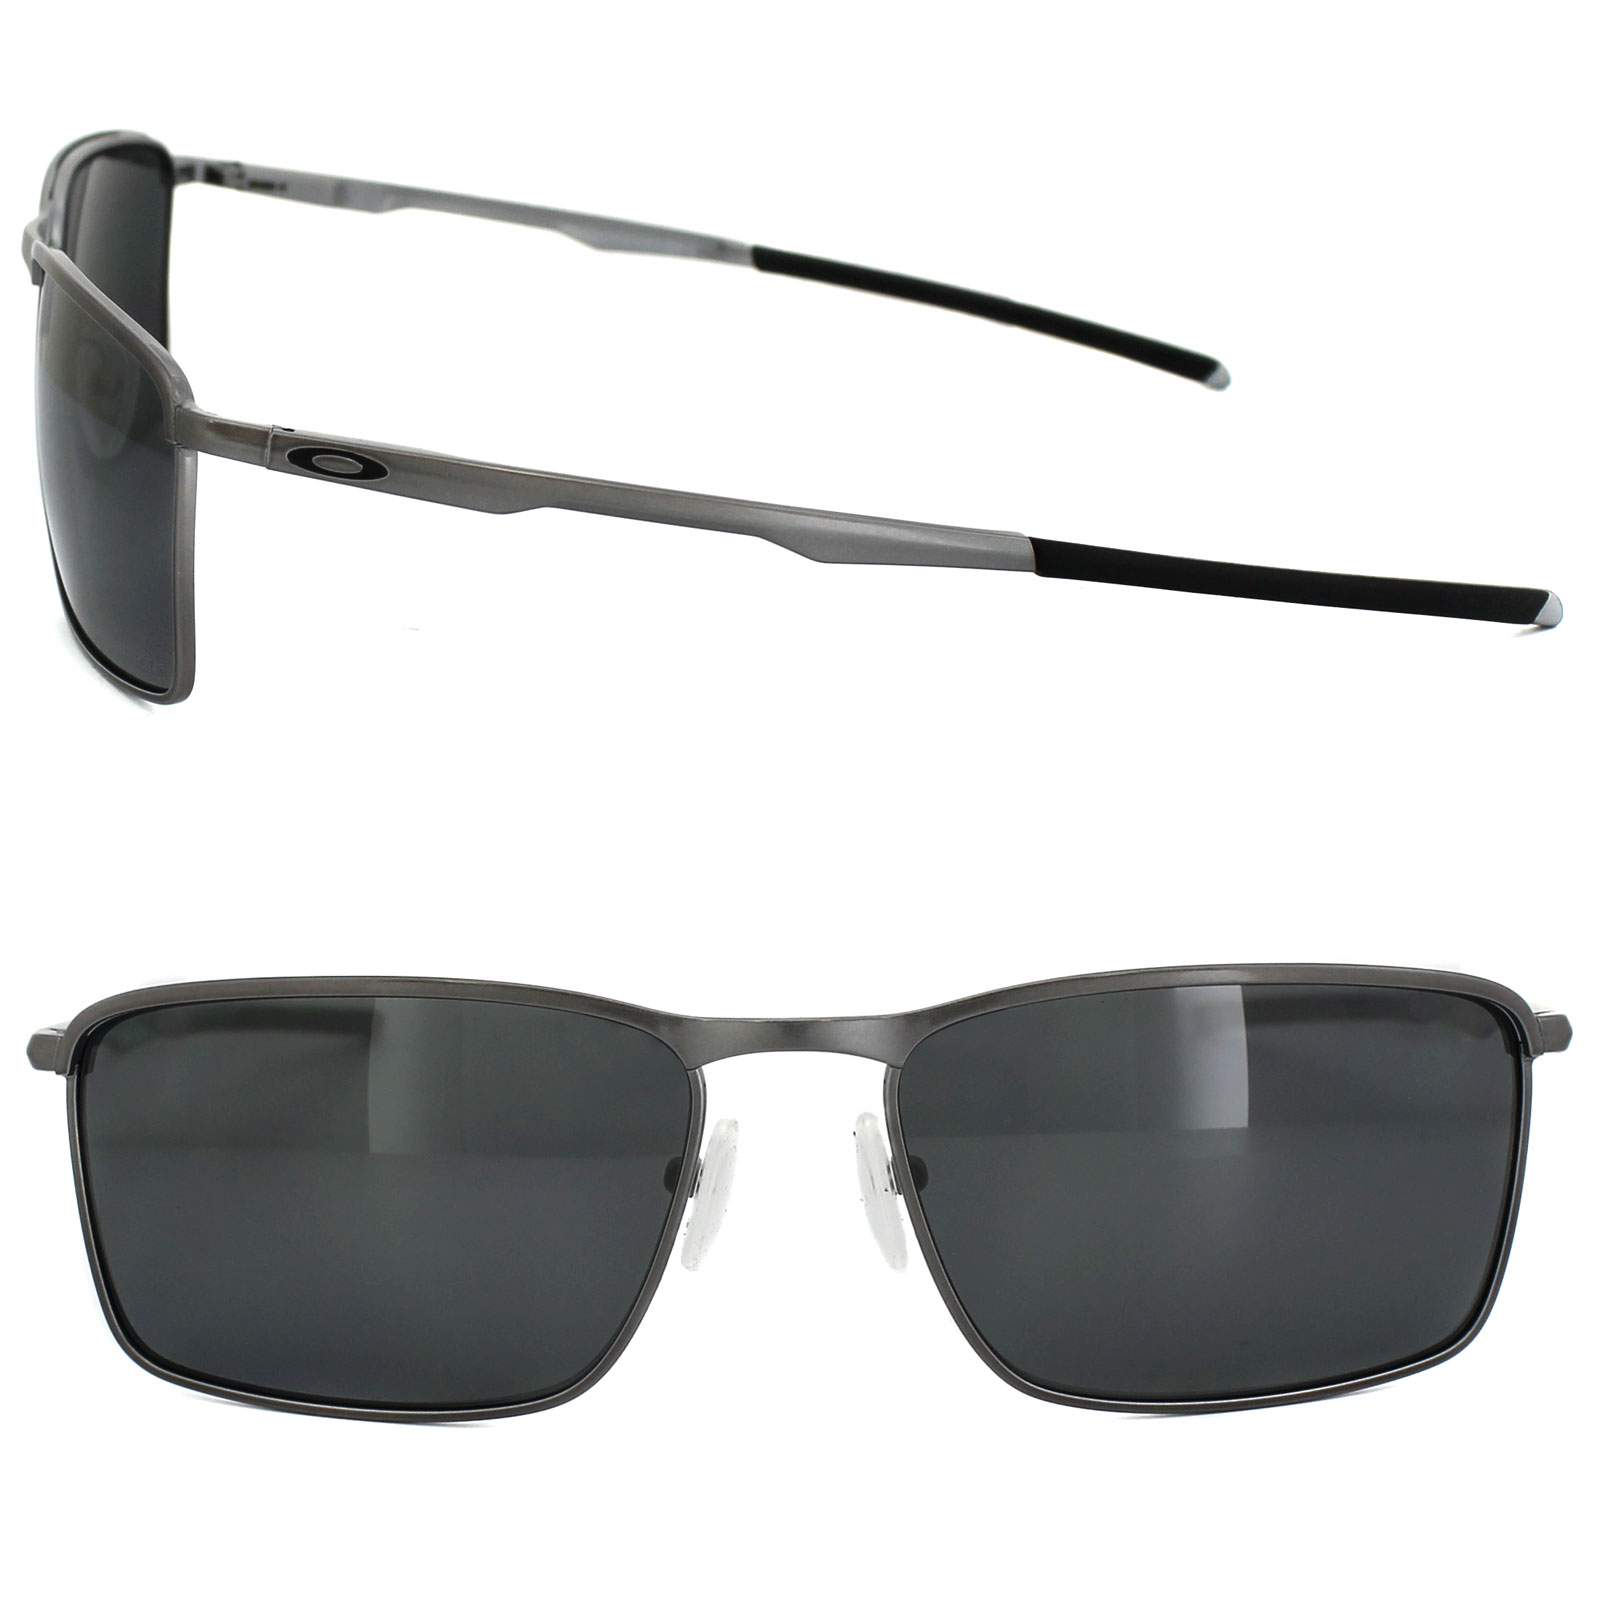 7b6f2b0192e Oakley Conductor 6 Sunglasses Reviews « Heritage Malta